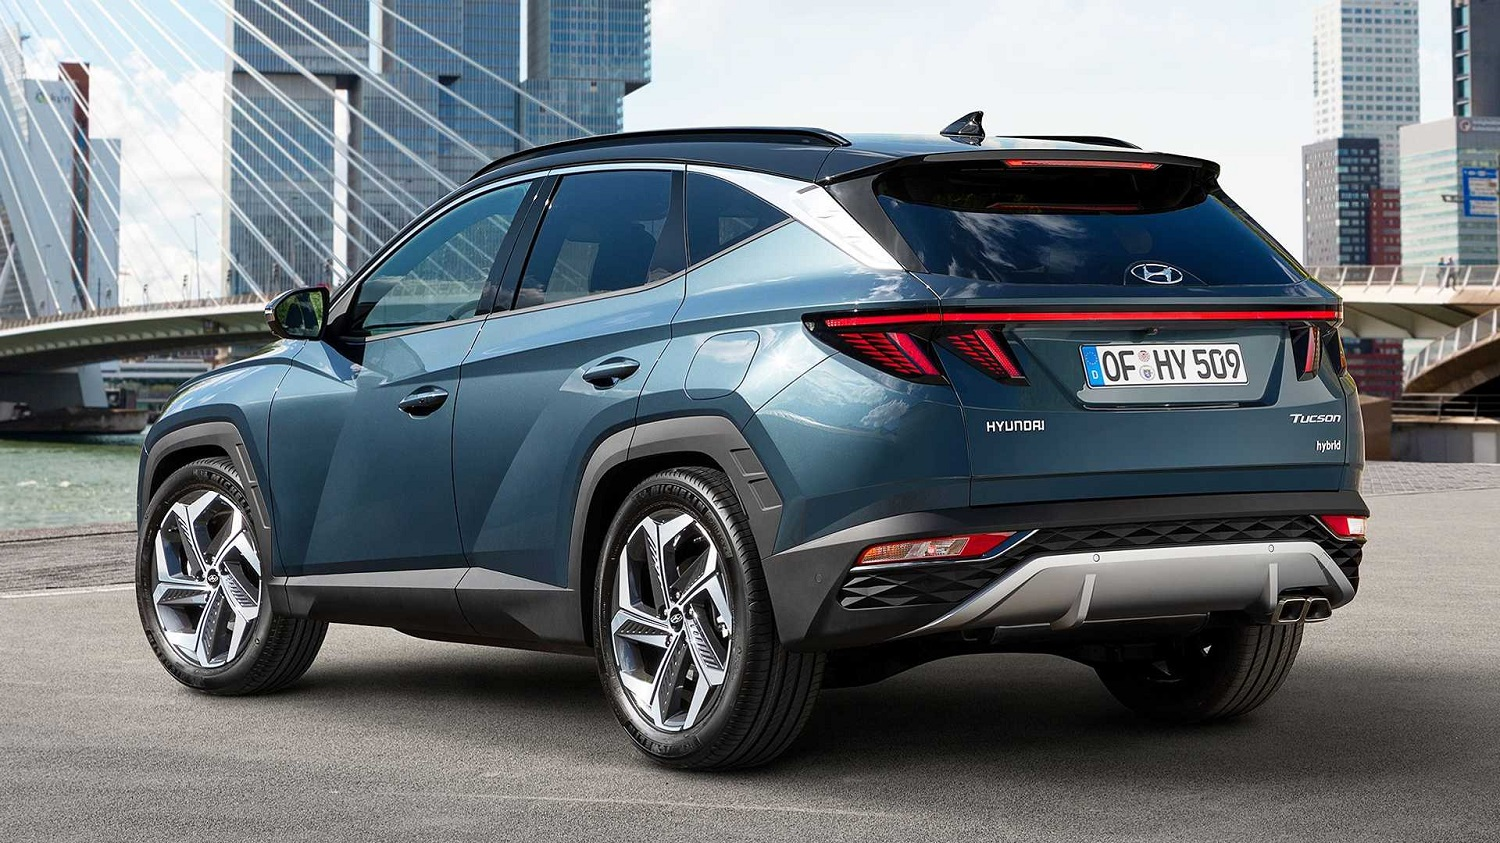 2022 Hyundai Tuscon rear three quarter